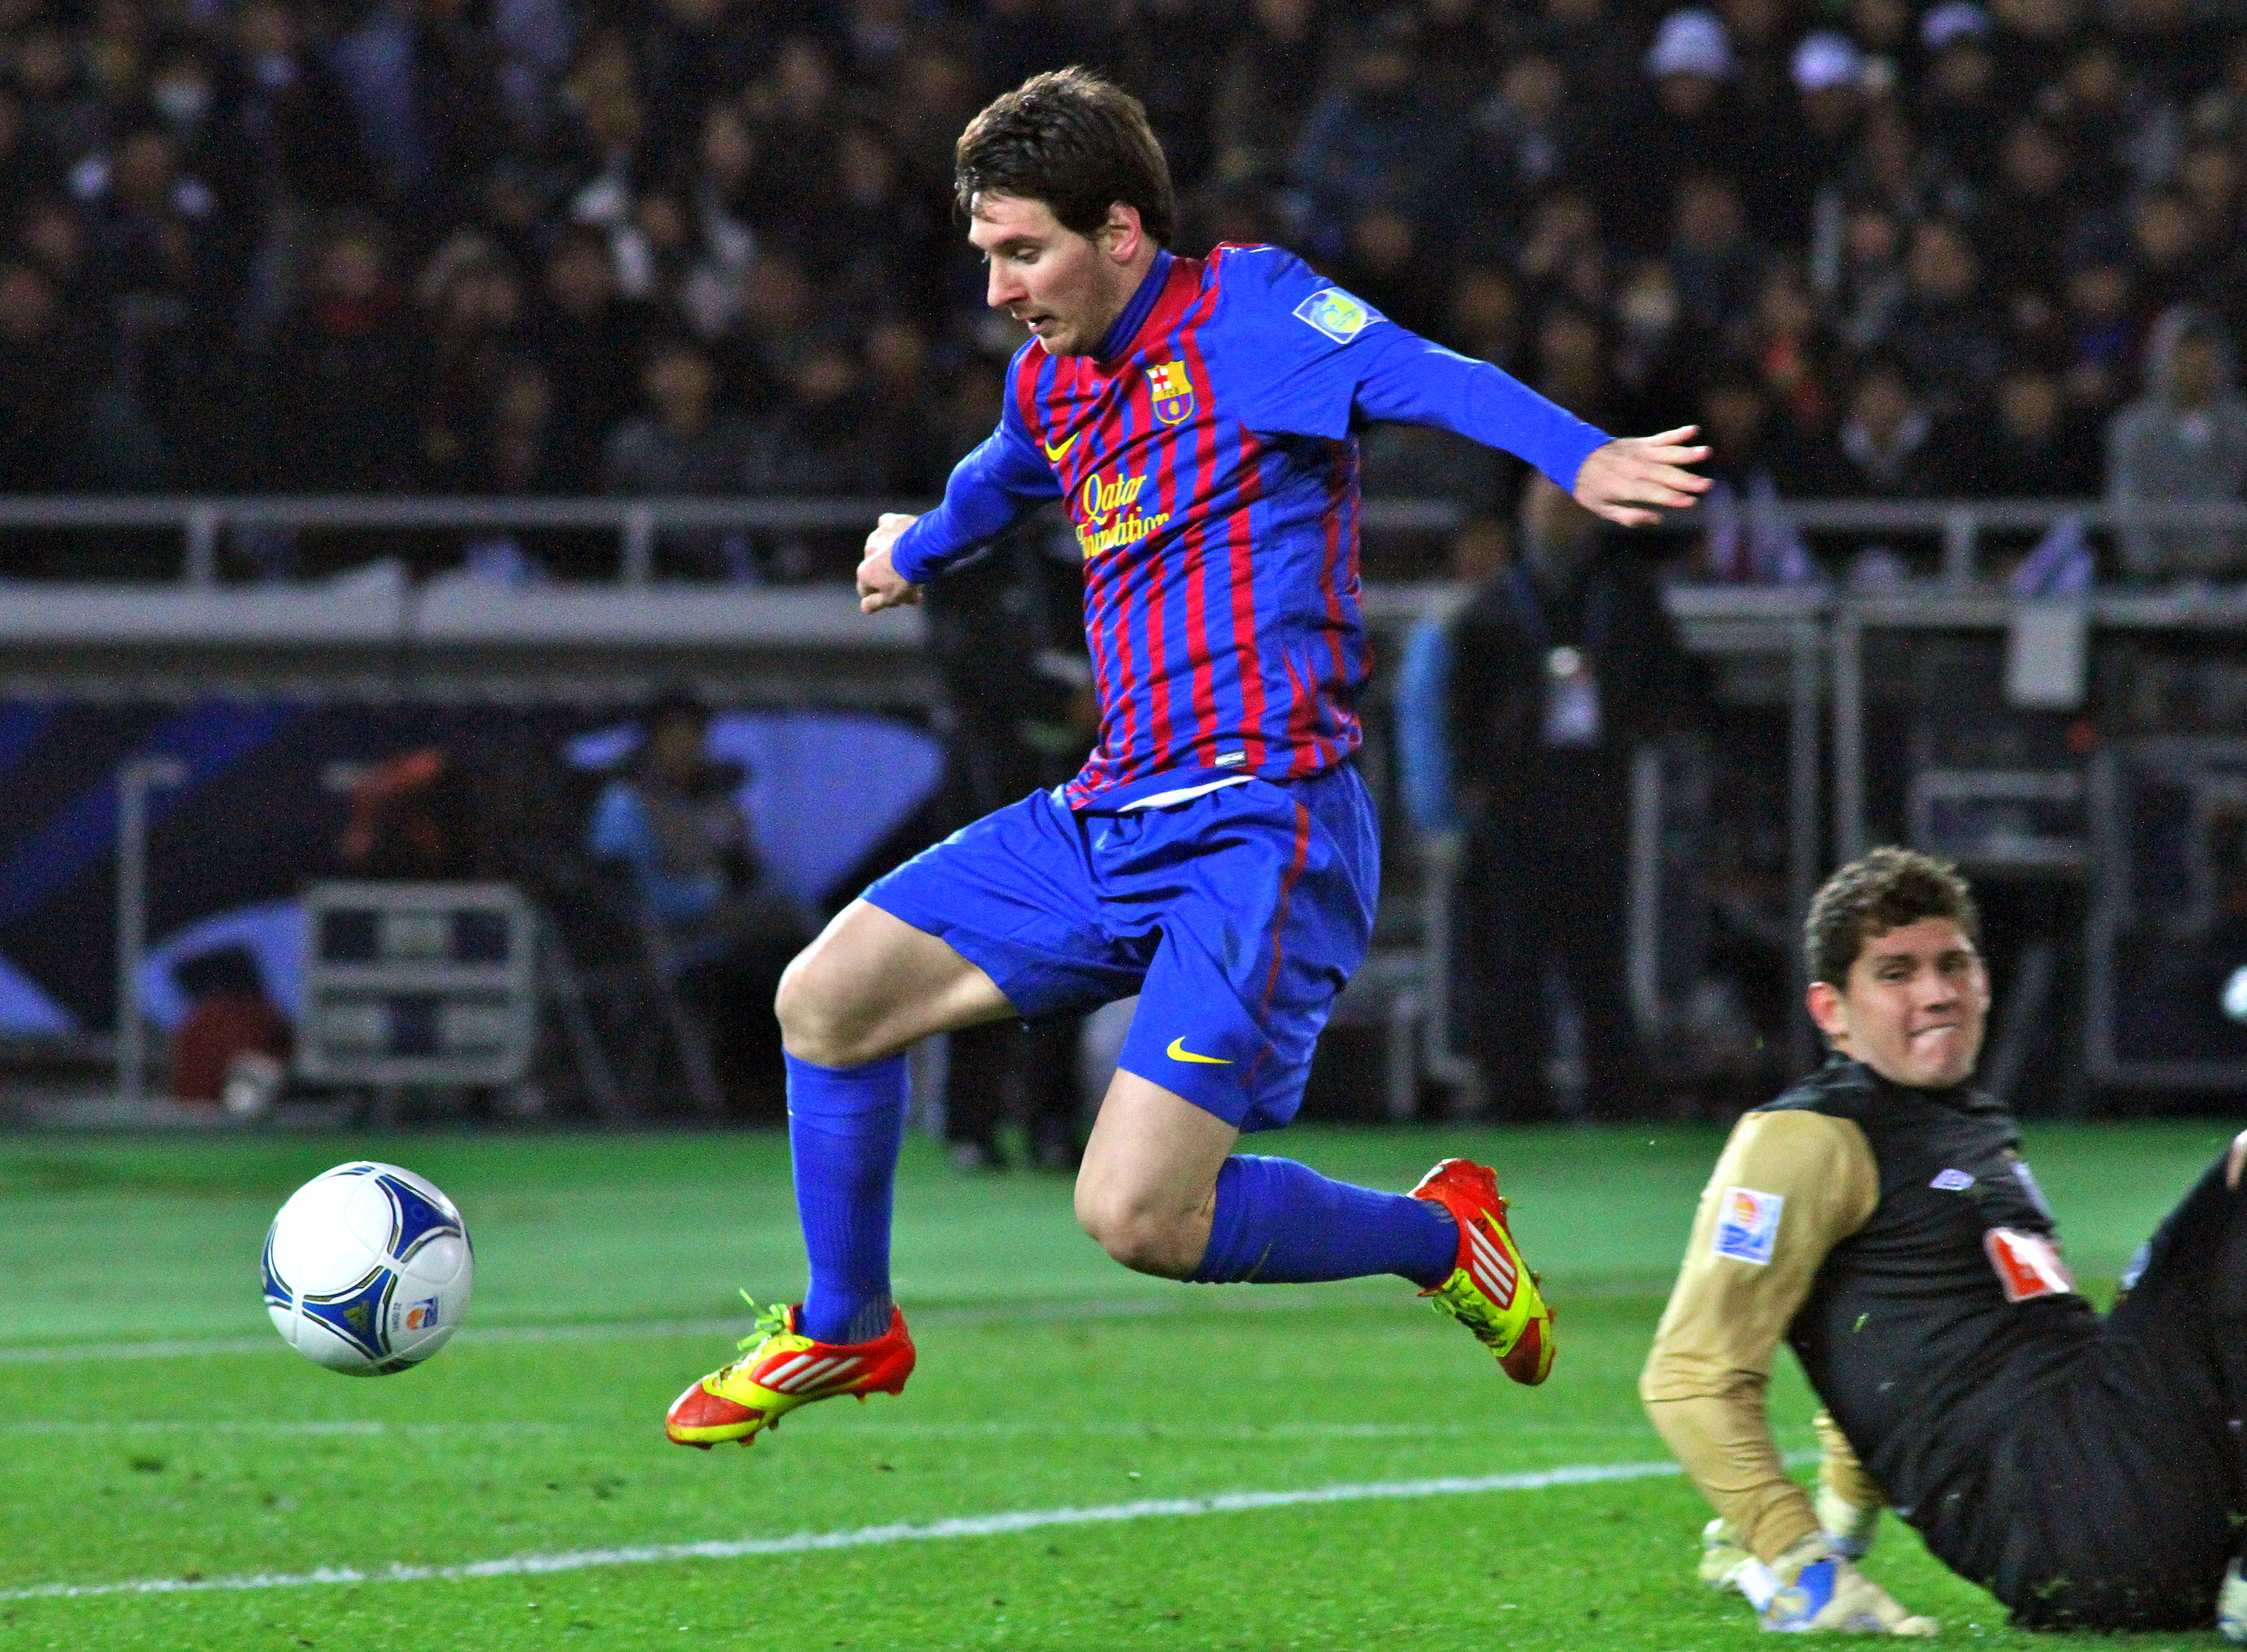 5 Powerful Life Lessons to Learn from Lionel Messi